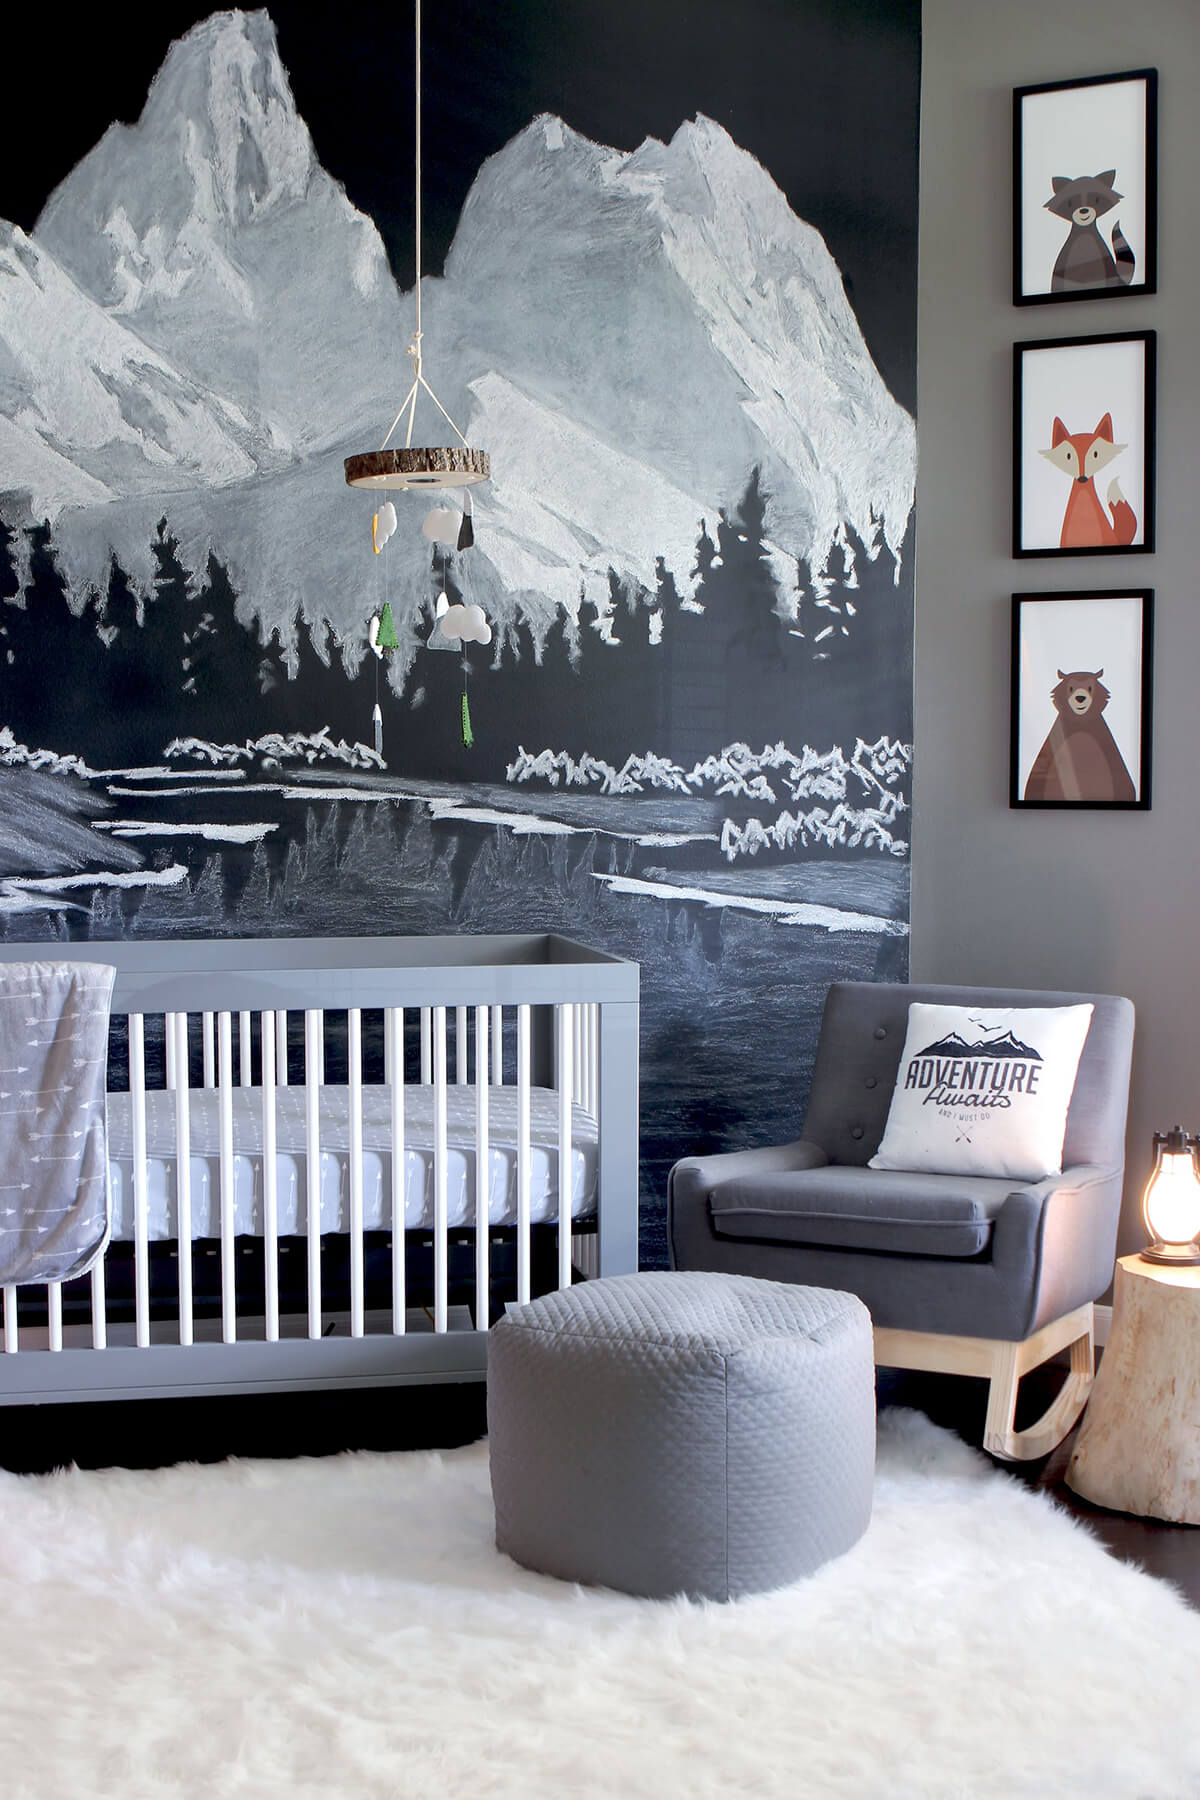 Bring the Outdoors Inside With a Larger-than-Life Mural